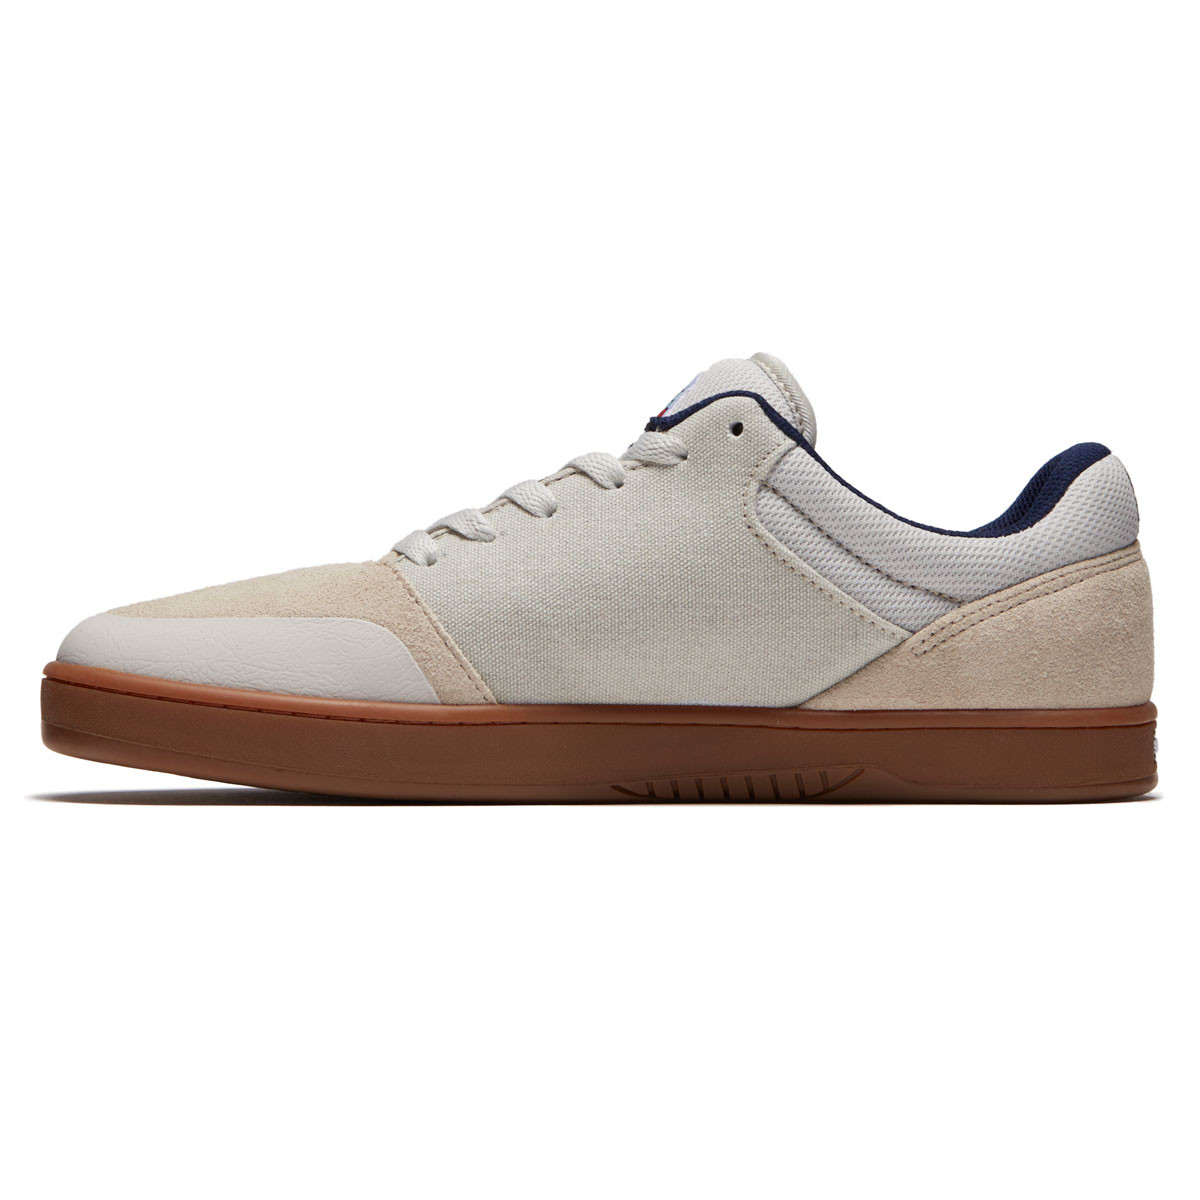 0fbcaadf1a01f0 Etnies Marana X Happy Hour Shoes - White Gum - 10.0